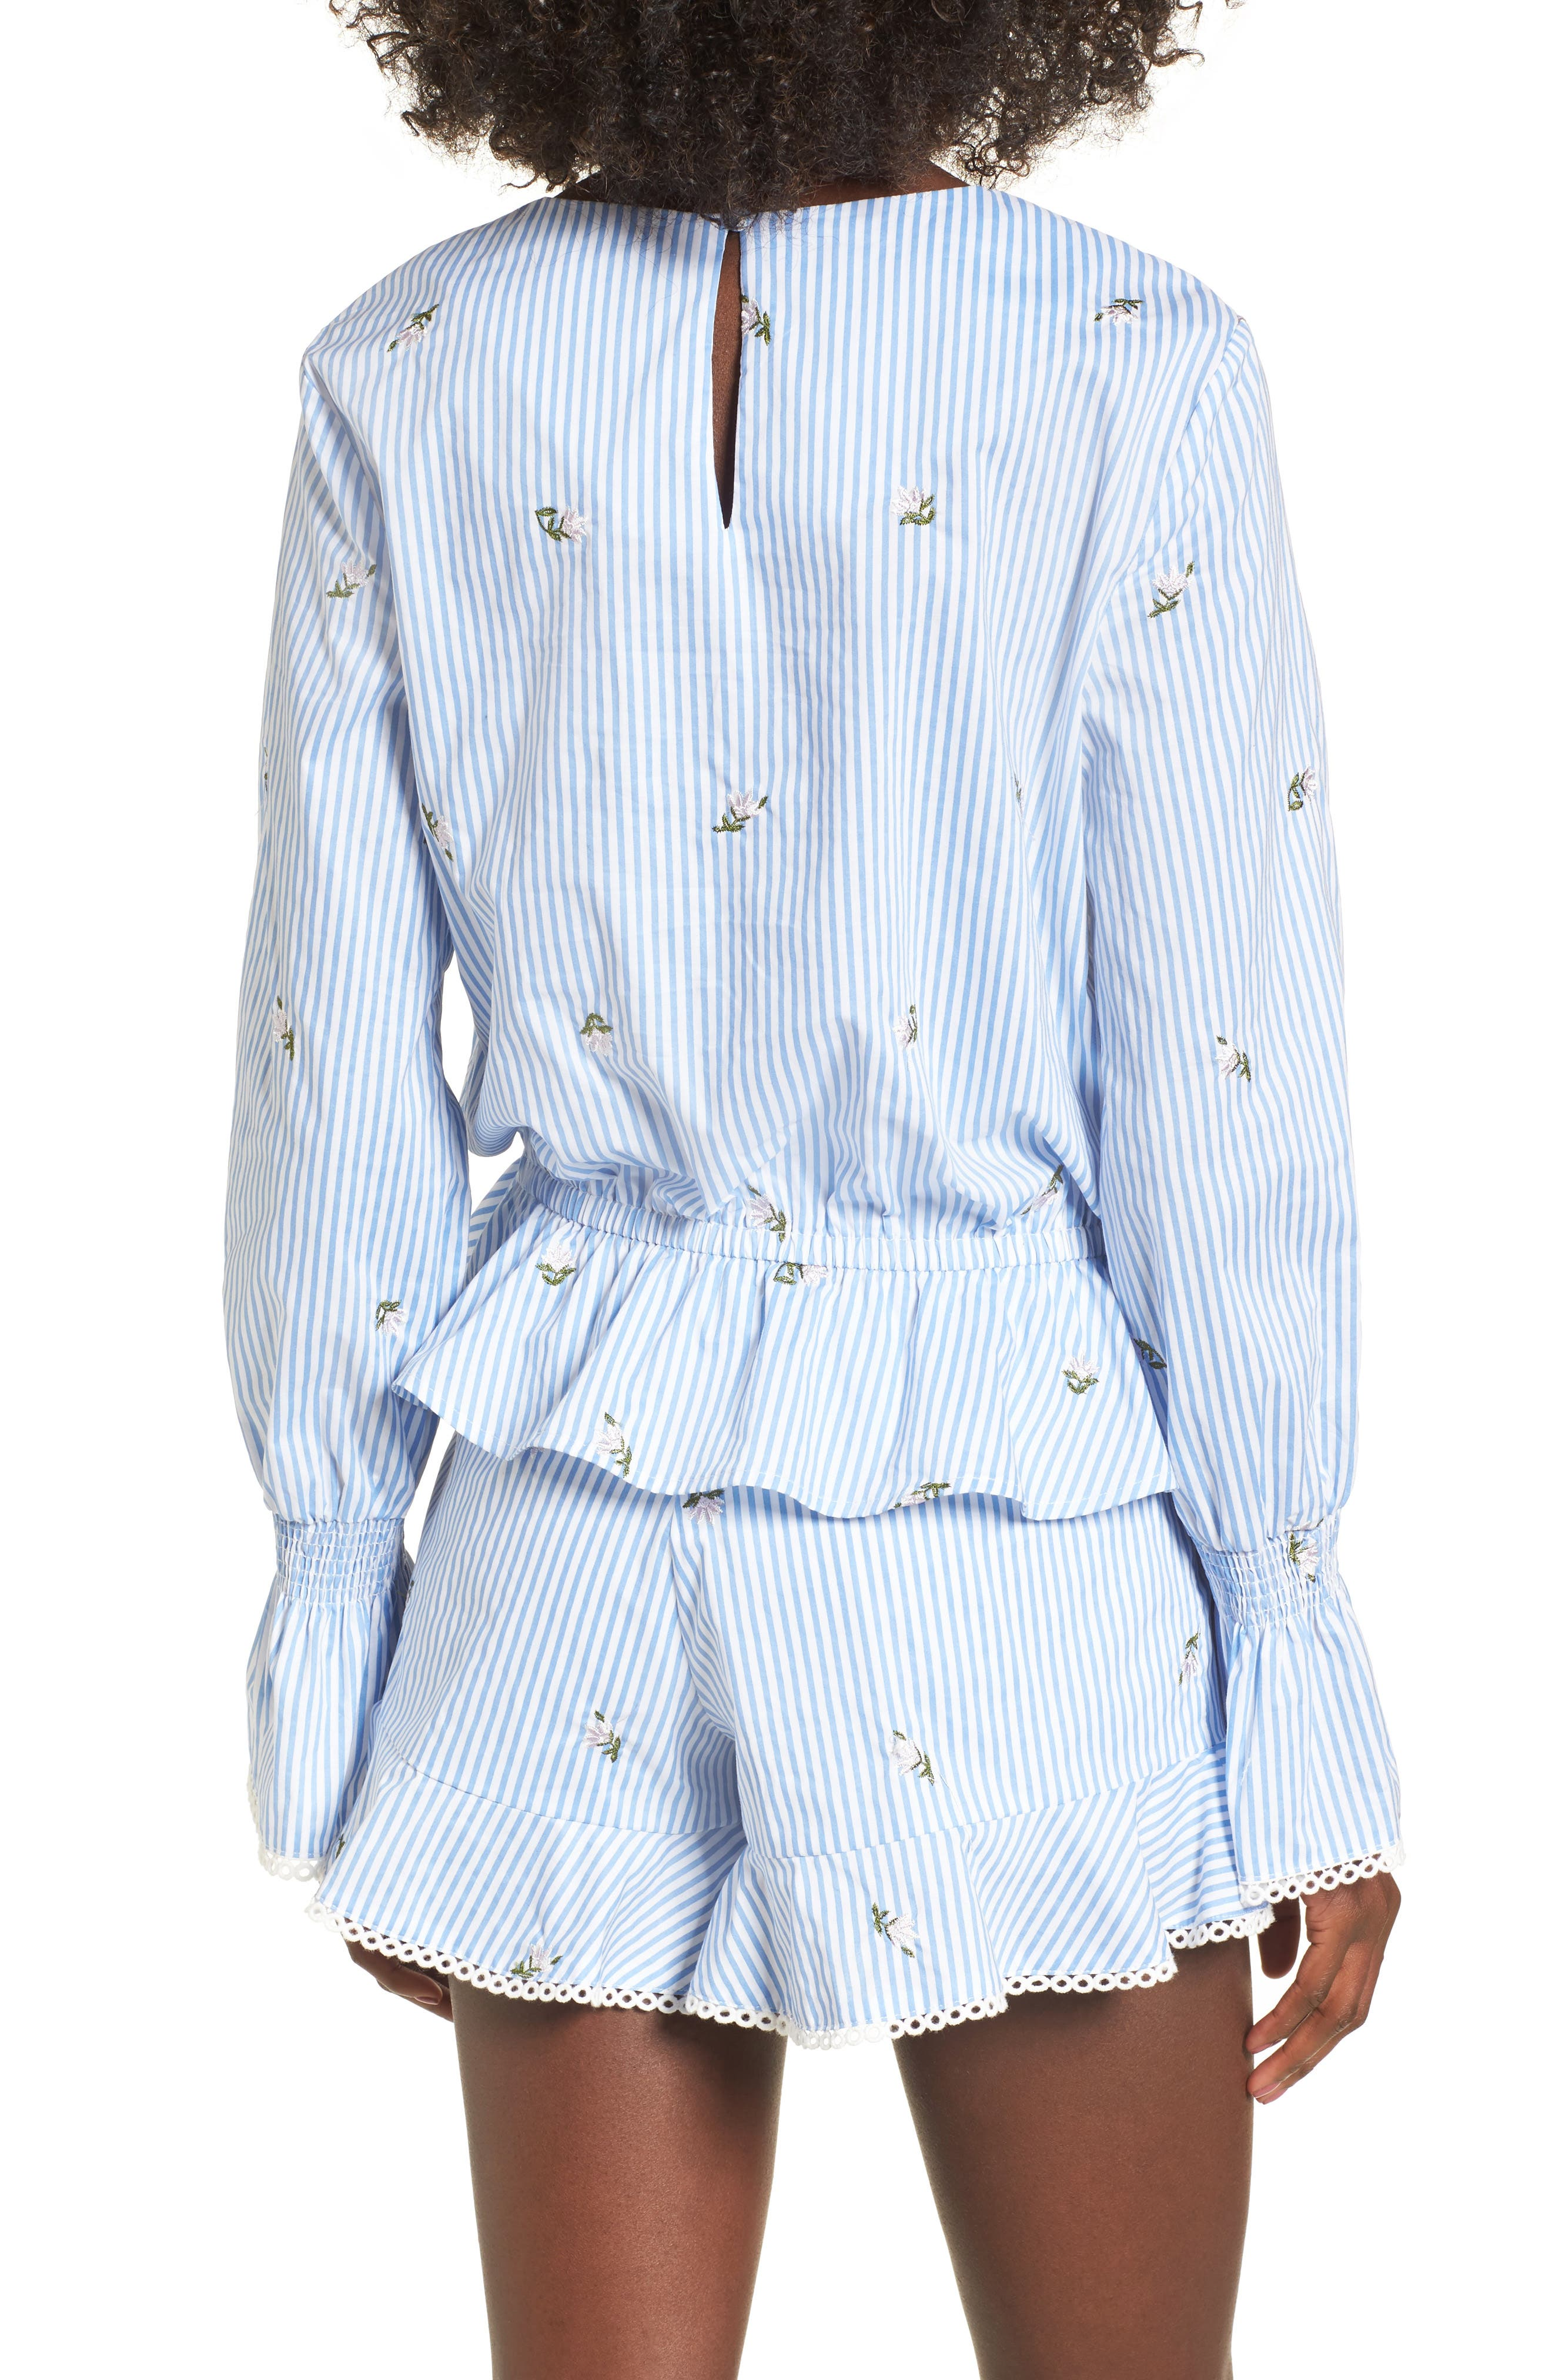 Embroidered Peplum Top,                             Alternate thumbnail 2, color,                             Blue/ Ivory Stripe